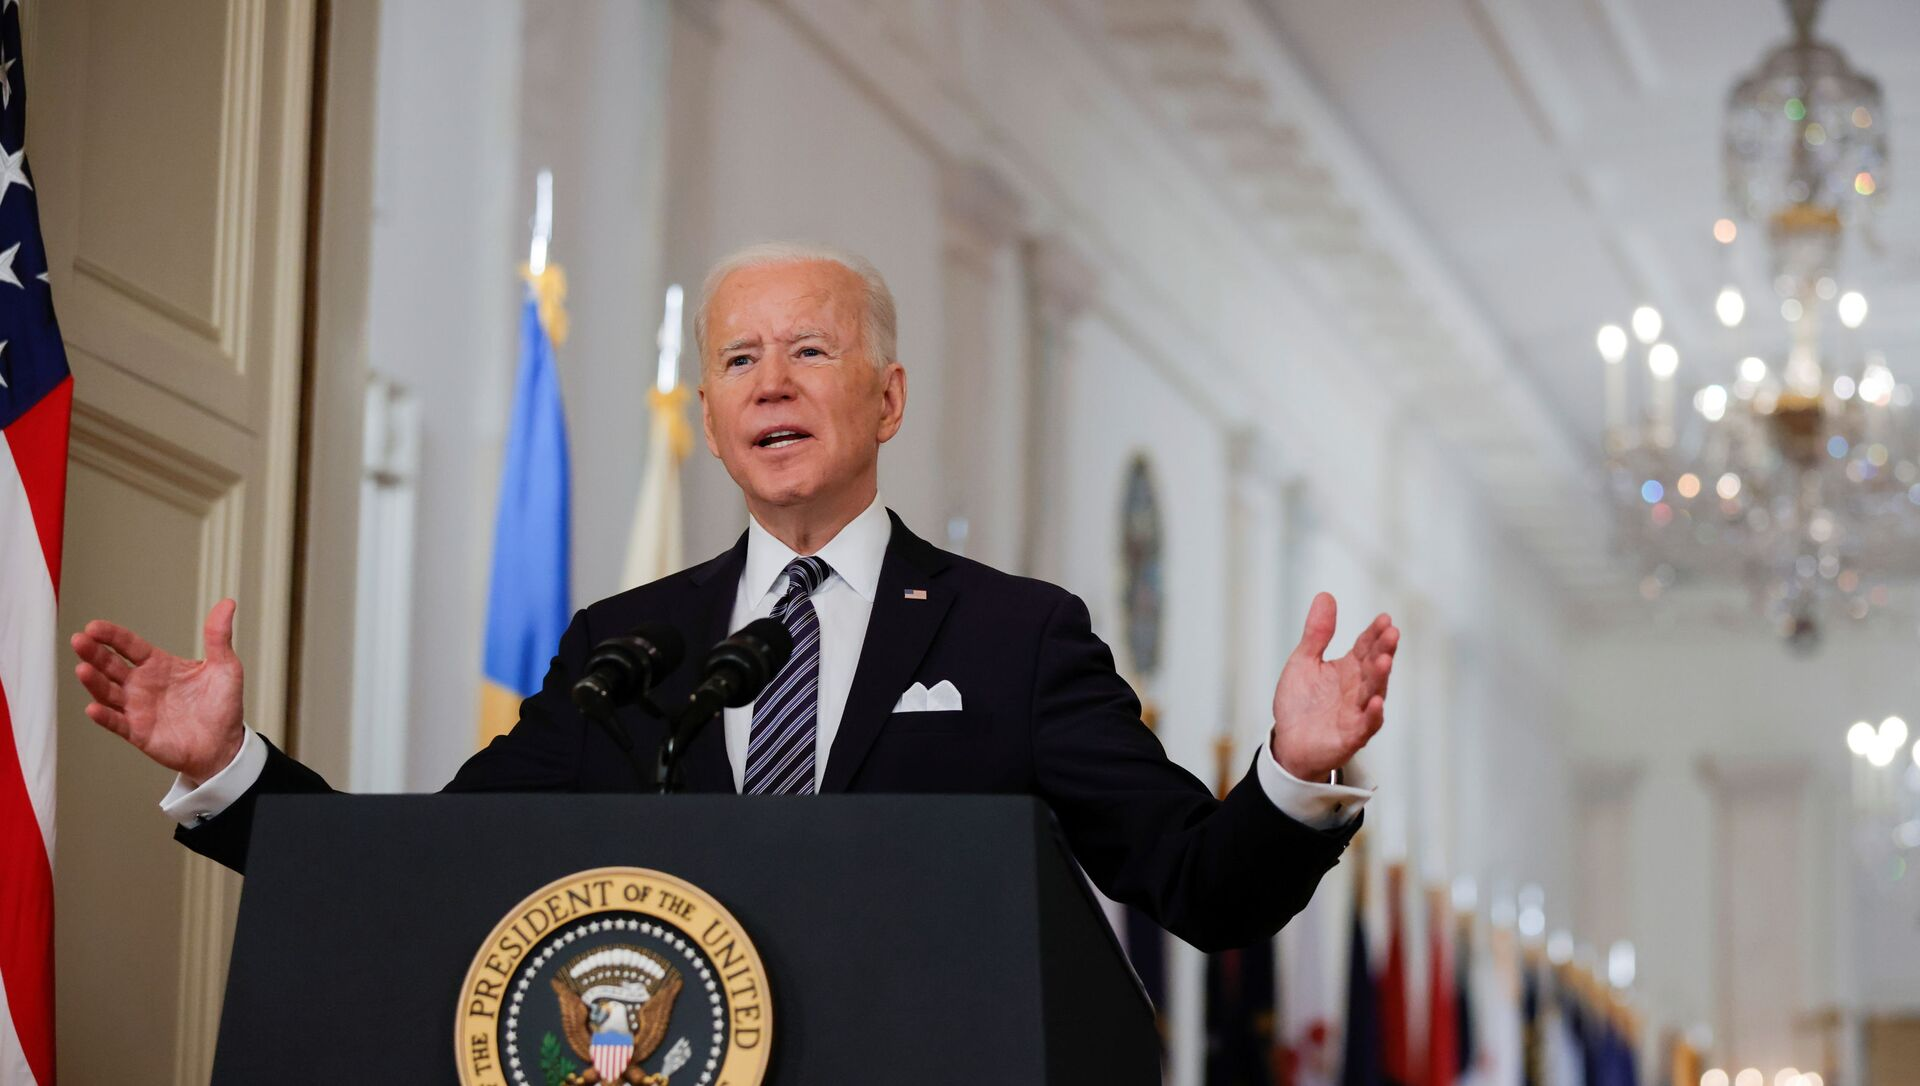 U.S. President Joe Biden delivers his first prime time address as president, marking the one-year anniversary of widespread shutdowns to combat the coronavirus disease (COVID-19) pandemic, and speak about the impact of the pandemic during an address from the East Room of the White House in Washington, U.S., March 11, 2021 - Sputnik International, 1920, 15.03.2021